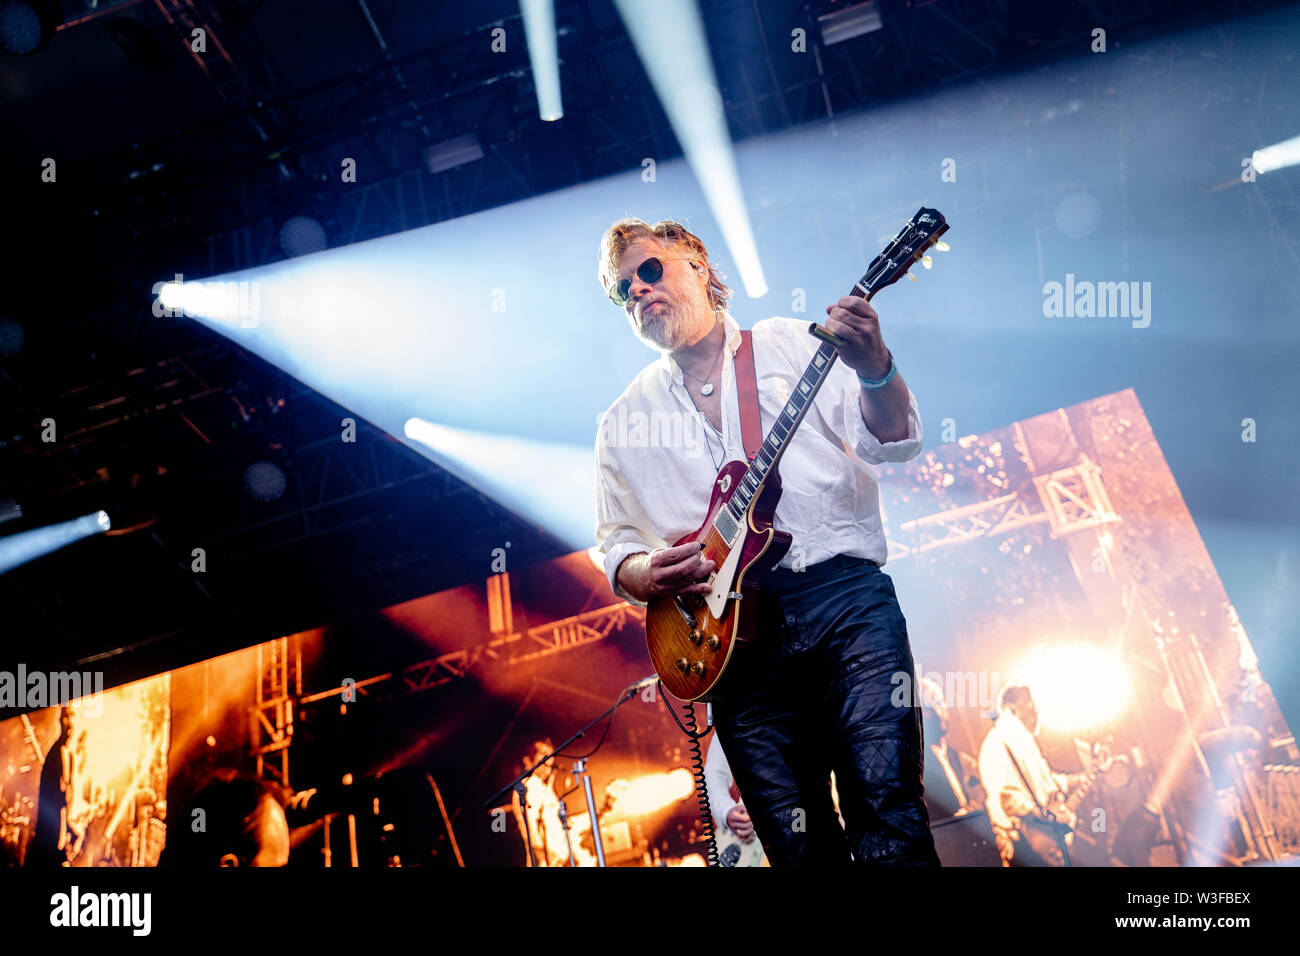 Bergen, Norway - June 13th, 2019. The Norwegian rock Madrugada performs a live concert during the Norwegian music festival Bergenfest 2019 in Bergen. Here guitarist Cato Thomassen is seen live on stage. (Photo credit: Gonzales Photo - Jarle H. Moe). - Stock Image